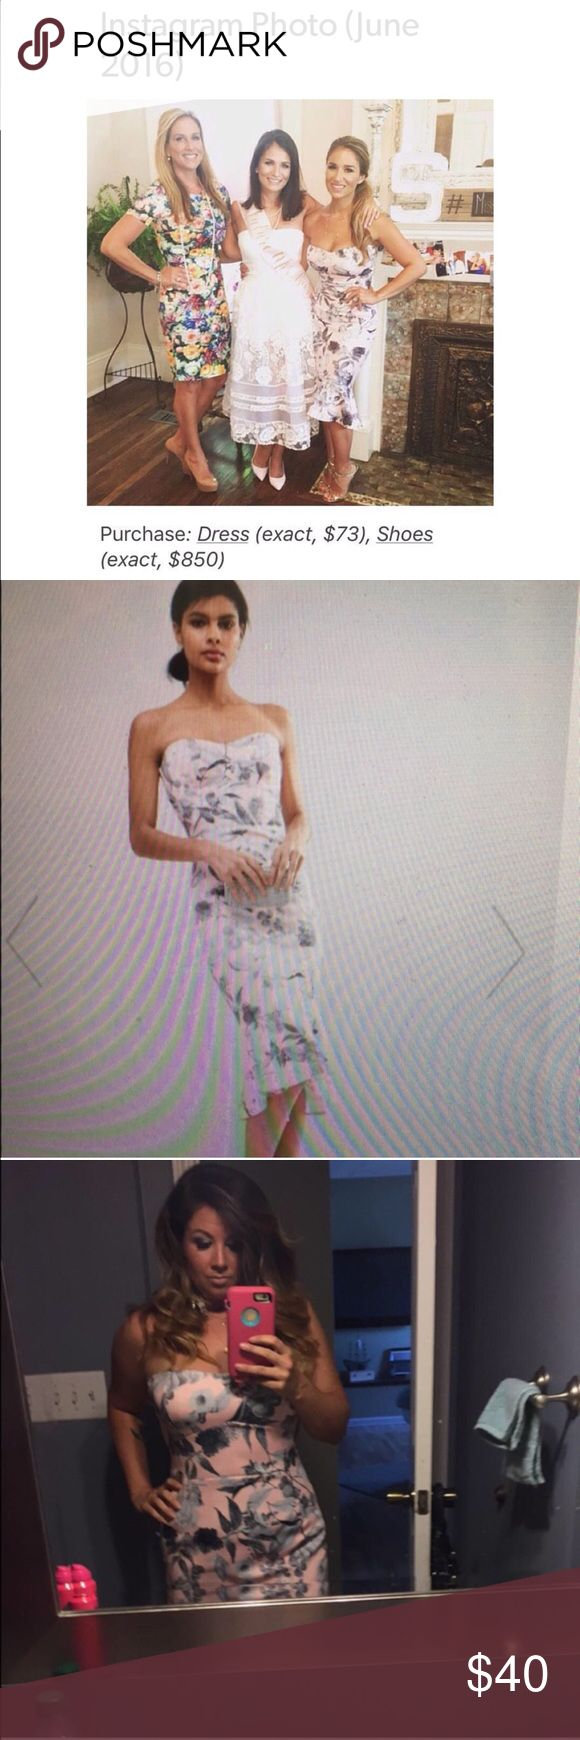 Asos pink floral dress ASO Jessie James Decker 12 Purchased this dress from Asos after I saw JJD wearing it. Size 12 body con fits more like a 10. Pink floral and in great condition. Worn for a wedding for about 2 hours. Asos Dresses Midi